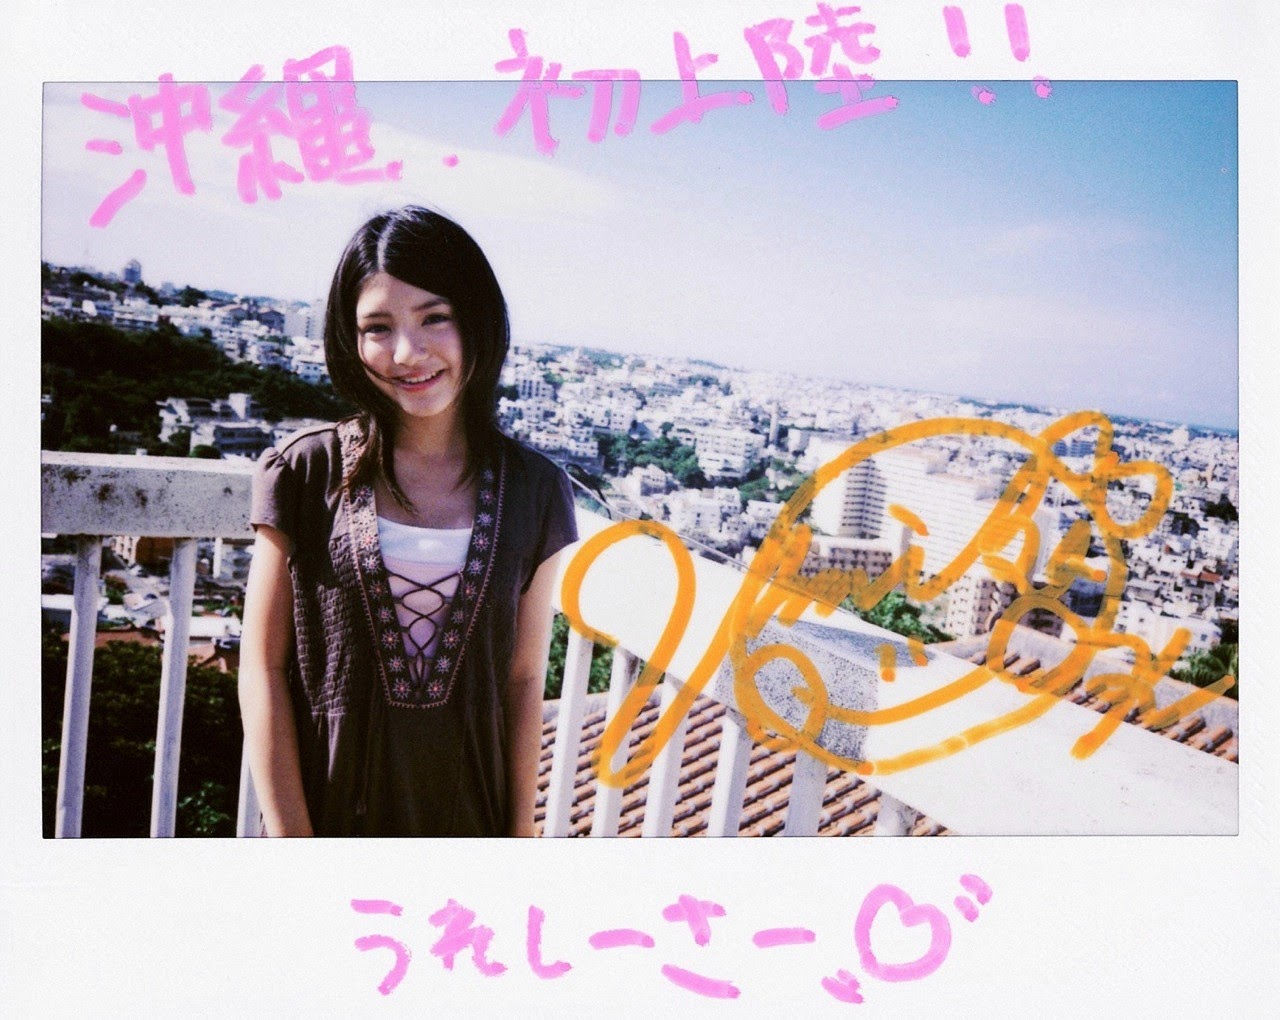 Umi chans smile explodes on some southern island005